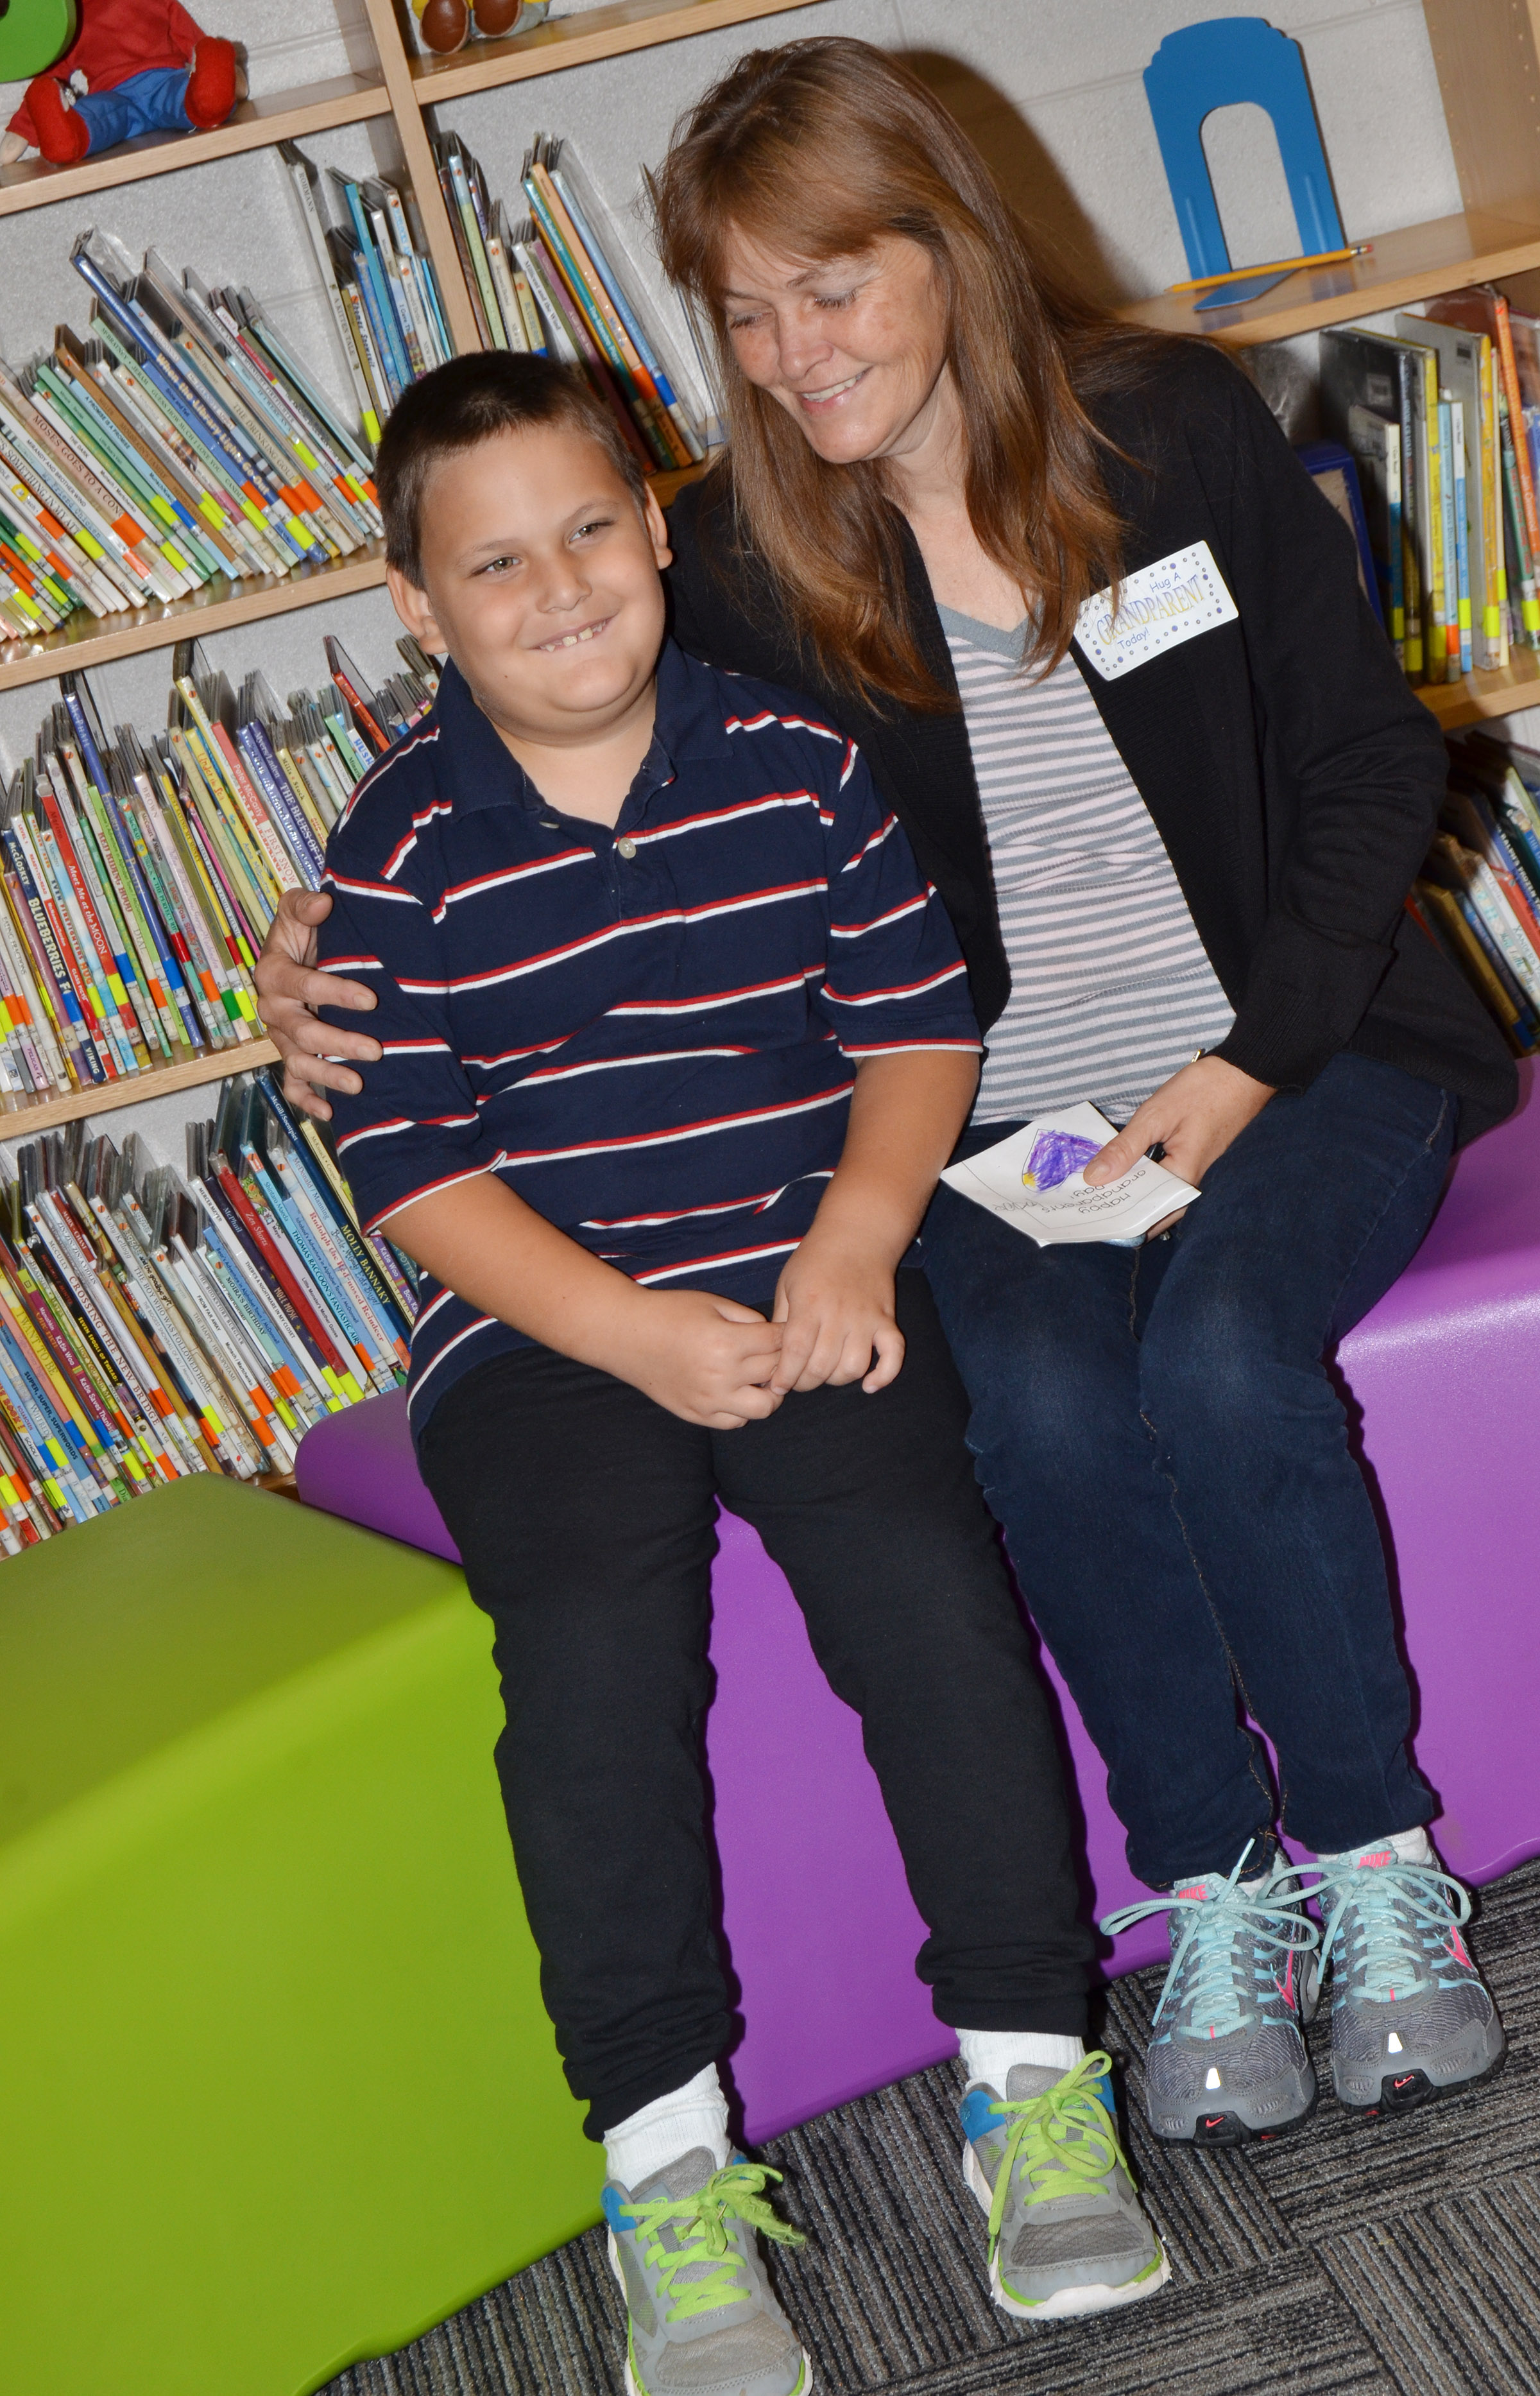 CES first-grader Cloud Malone poses for a photo with his grandmother.